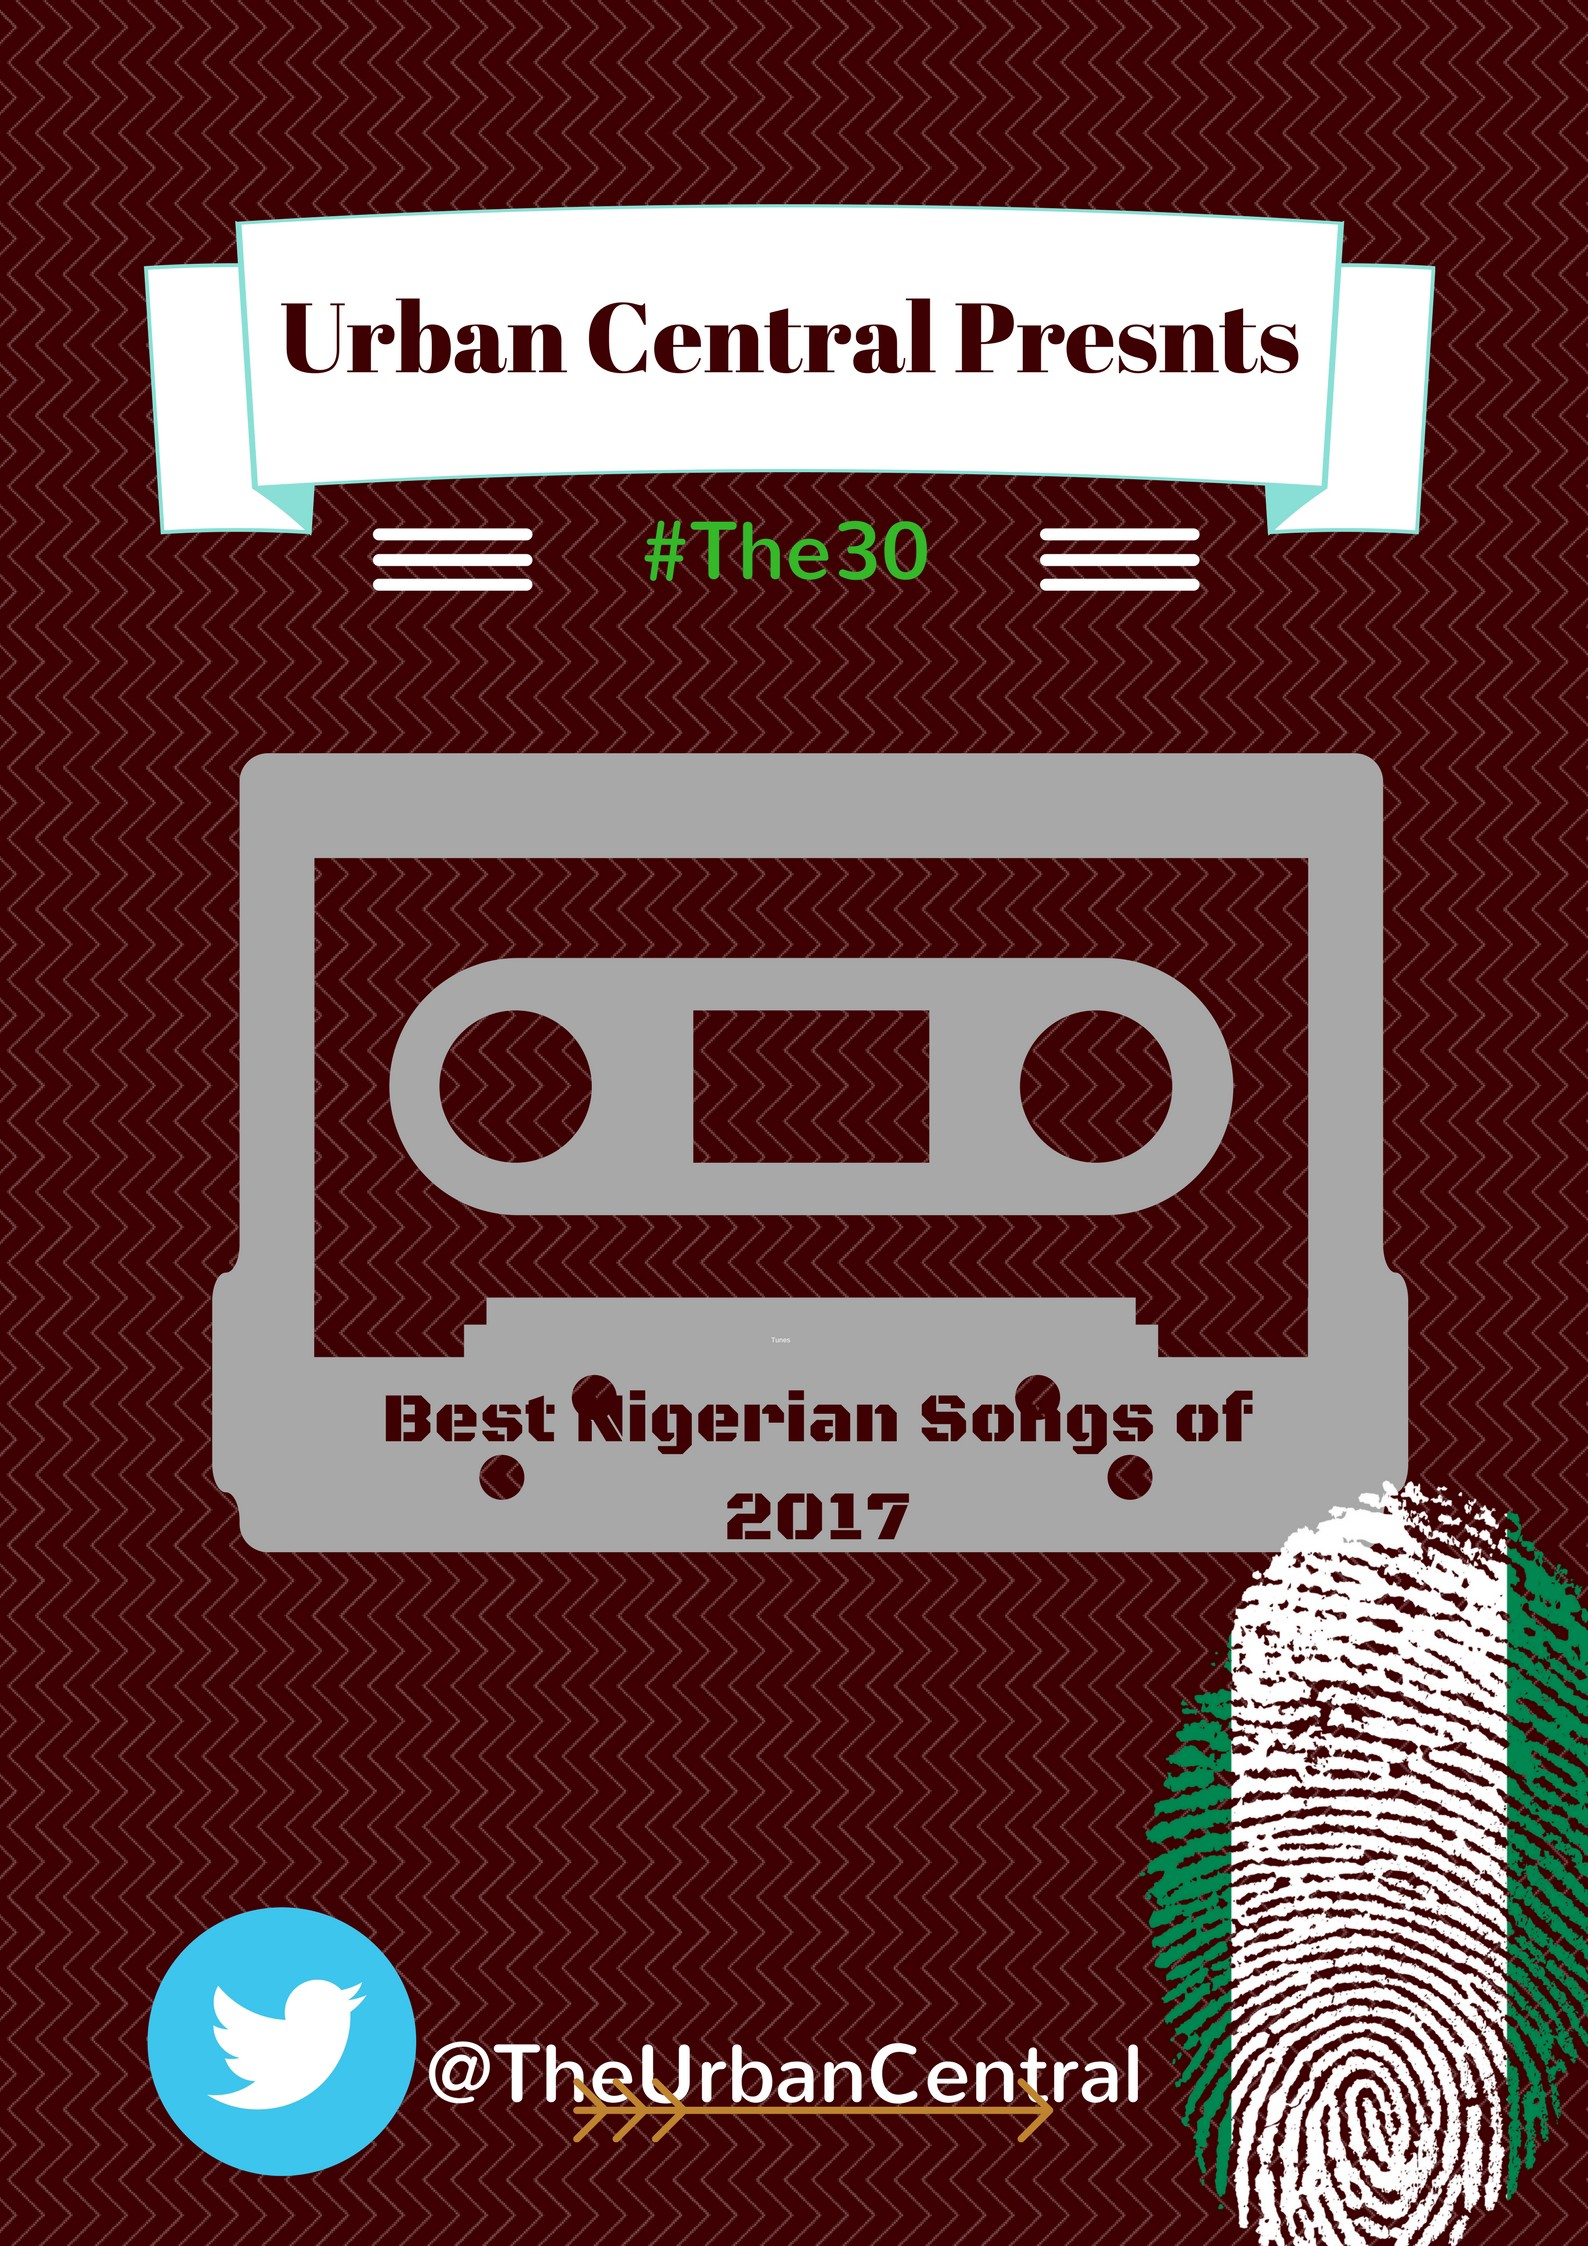 Urban Central Presents: The 30 Best Nigerian Songs Of 2017